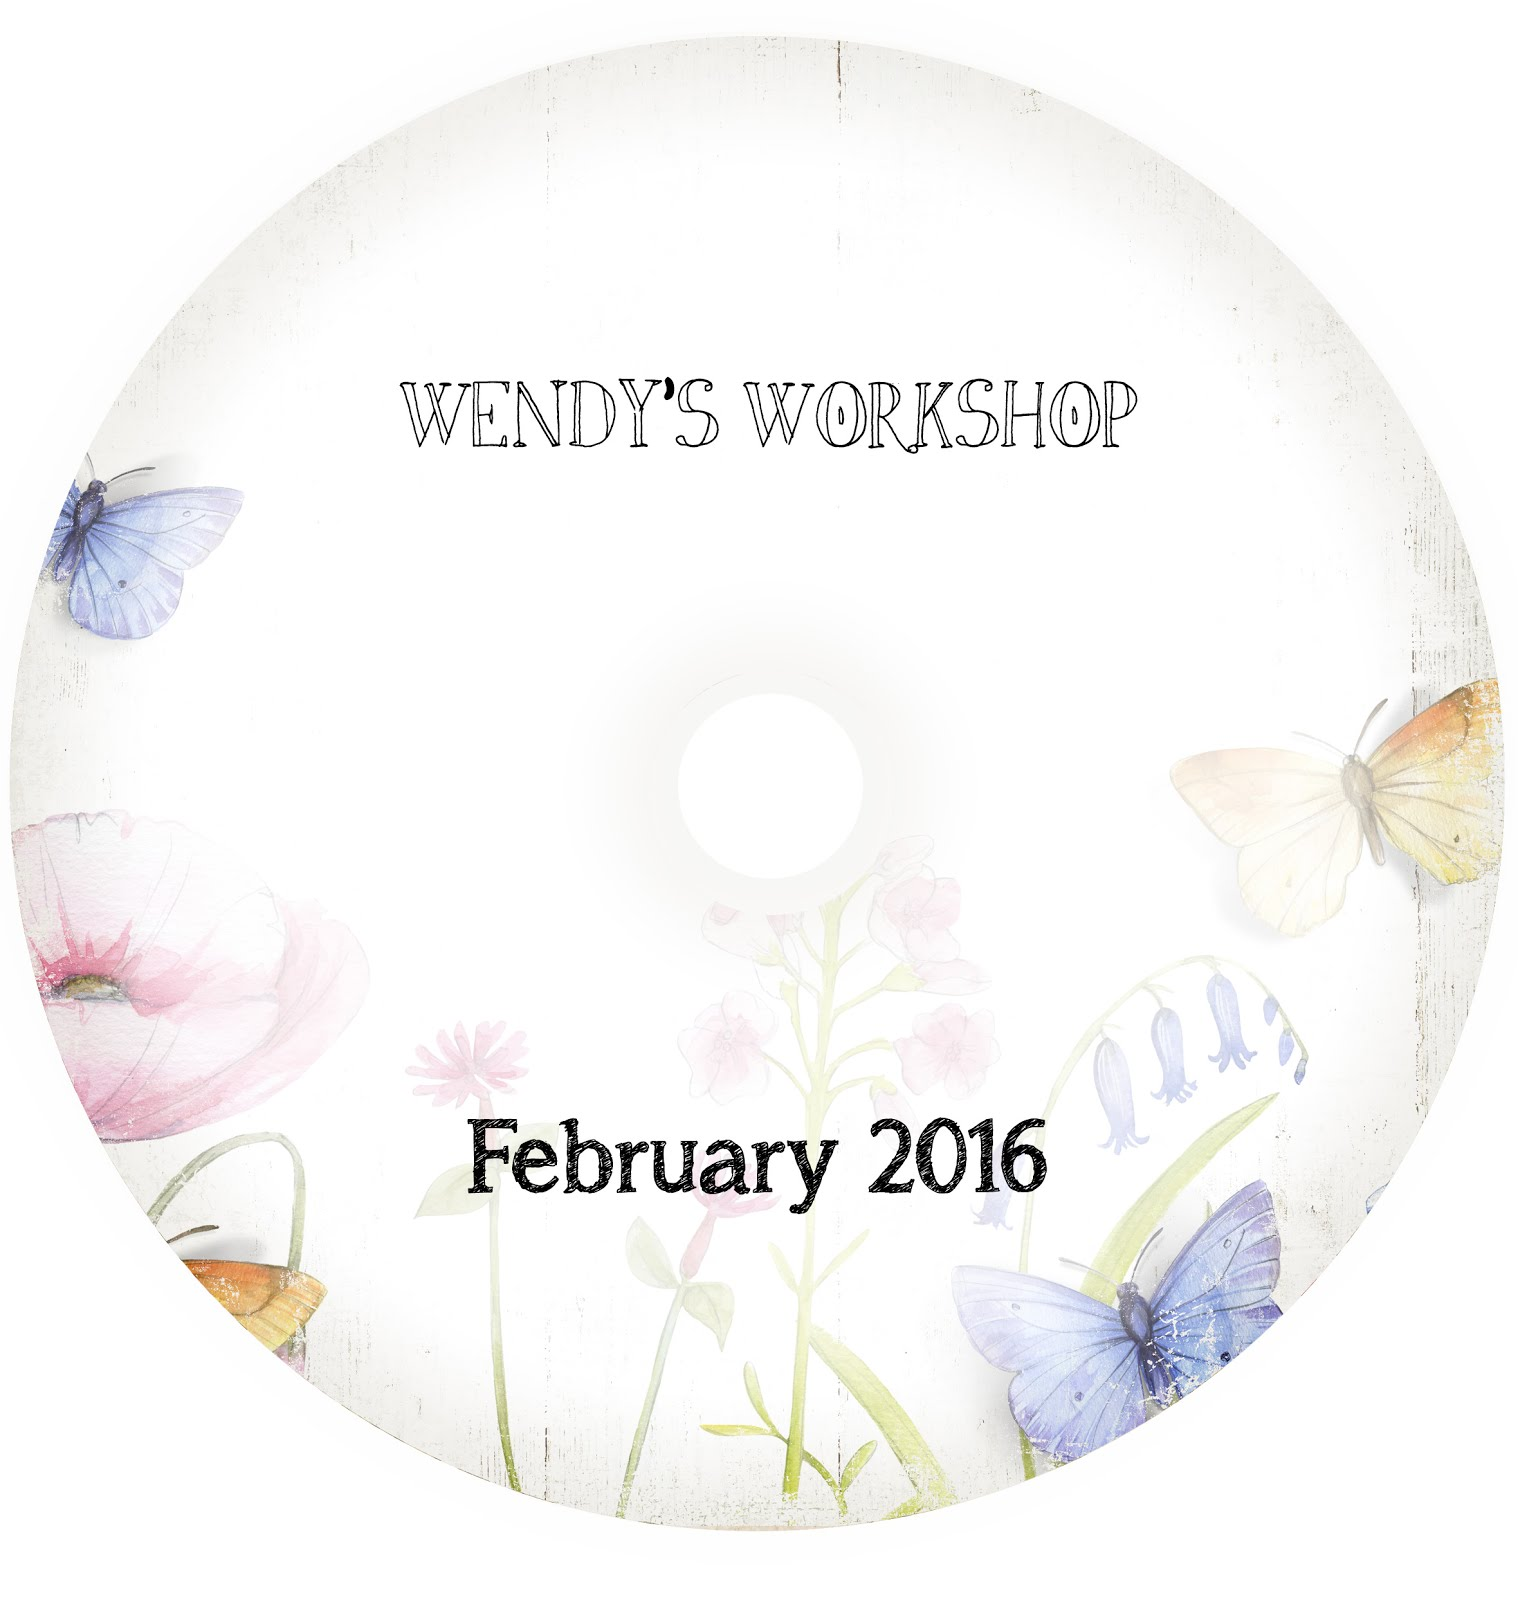 WENDY'S WORKSHOP CD FEBRUARY 2016 £8.00